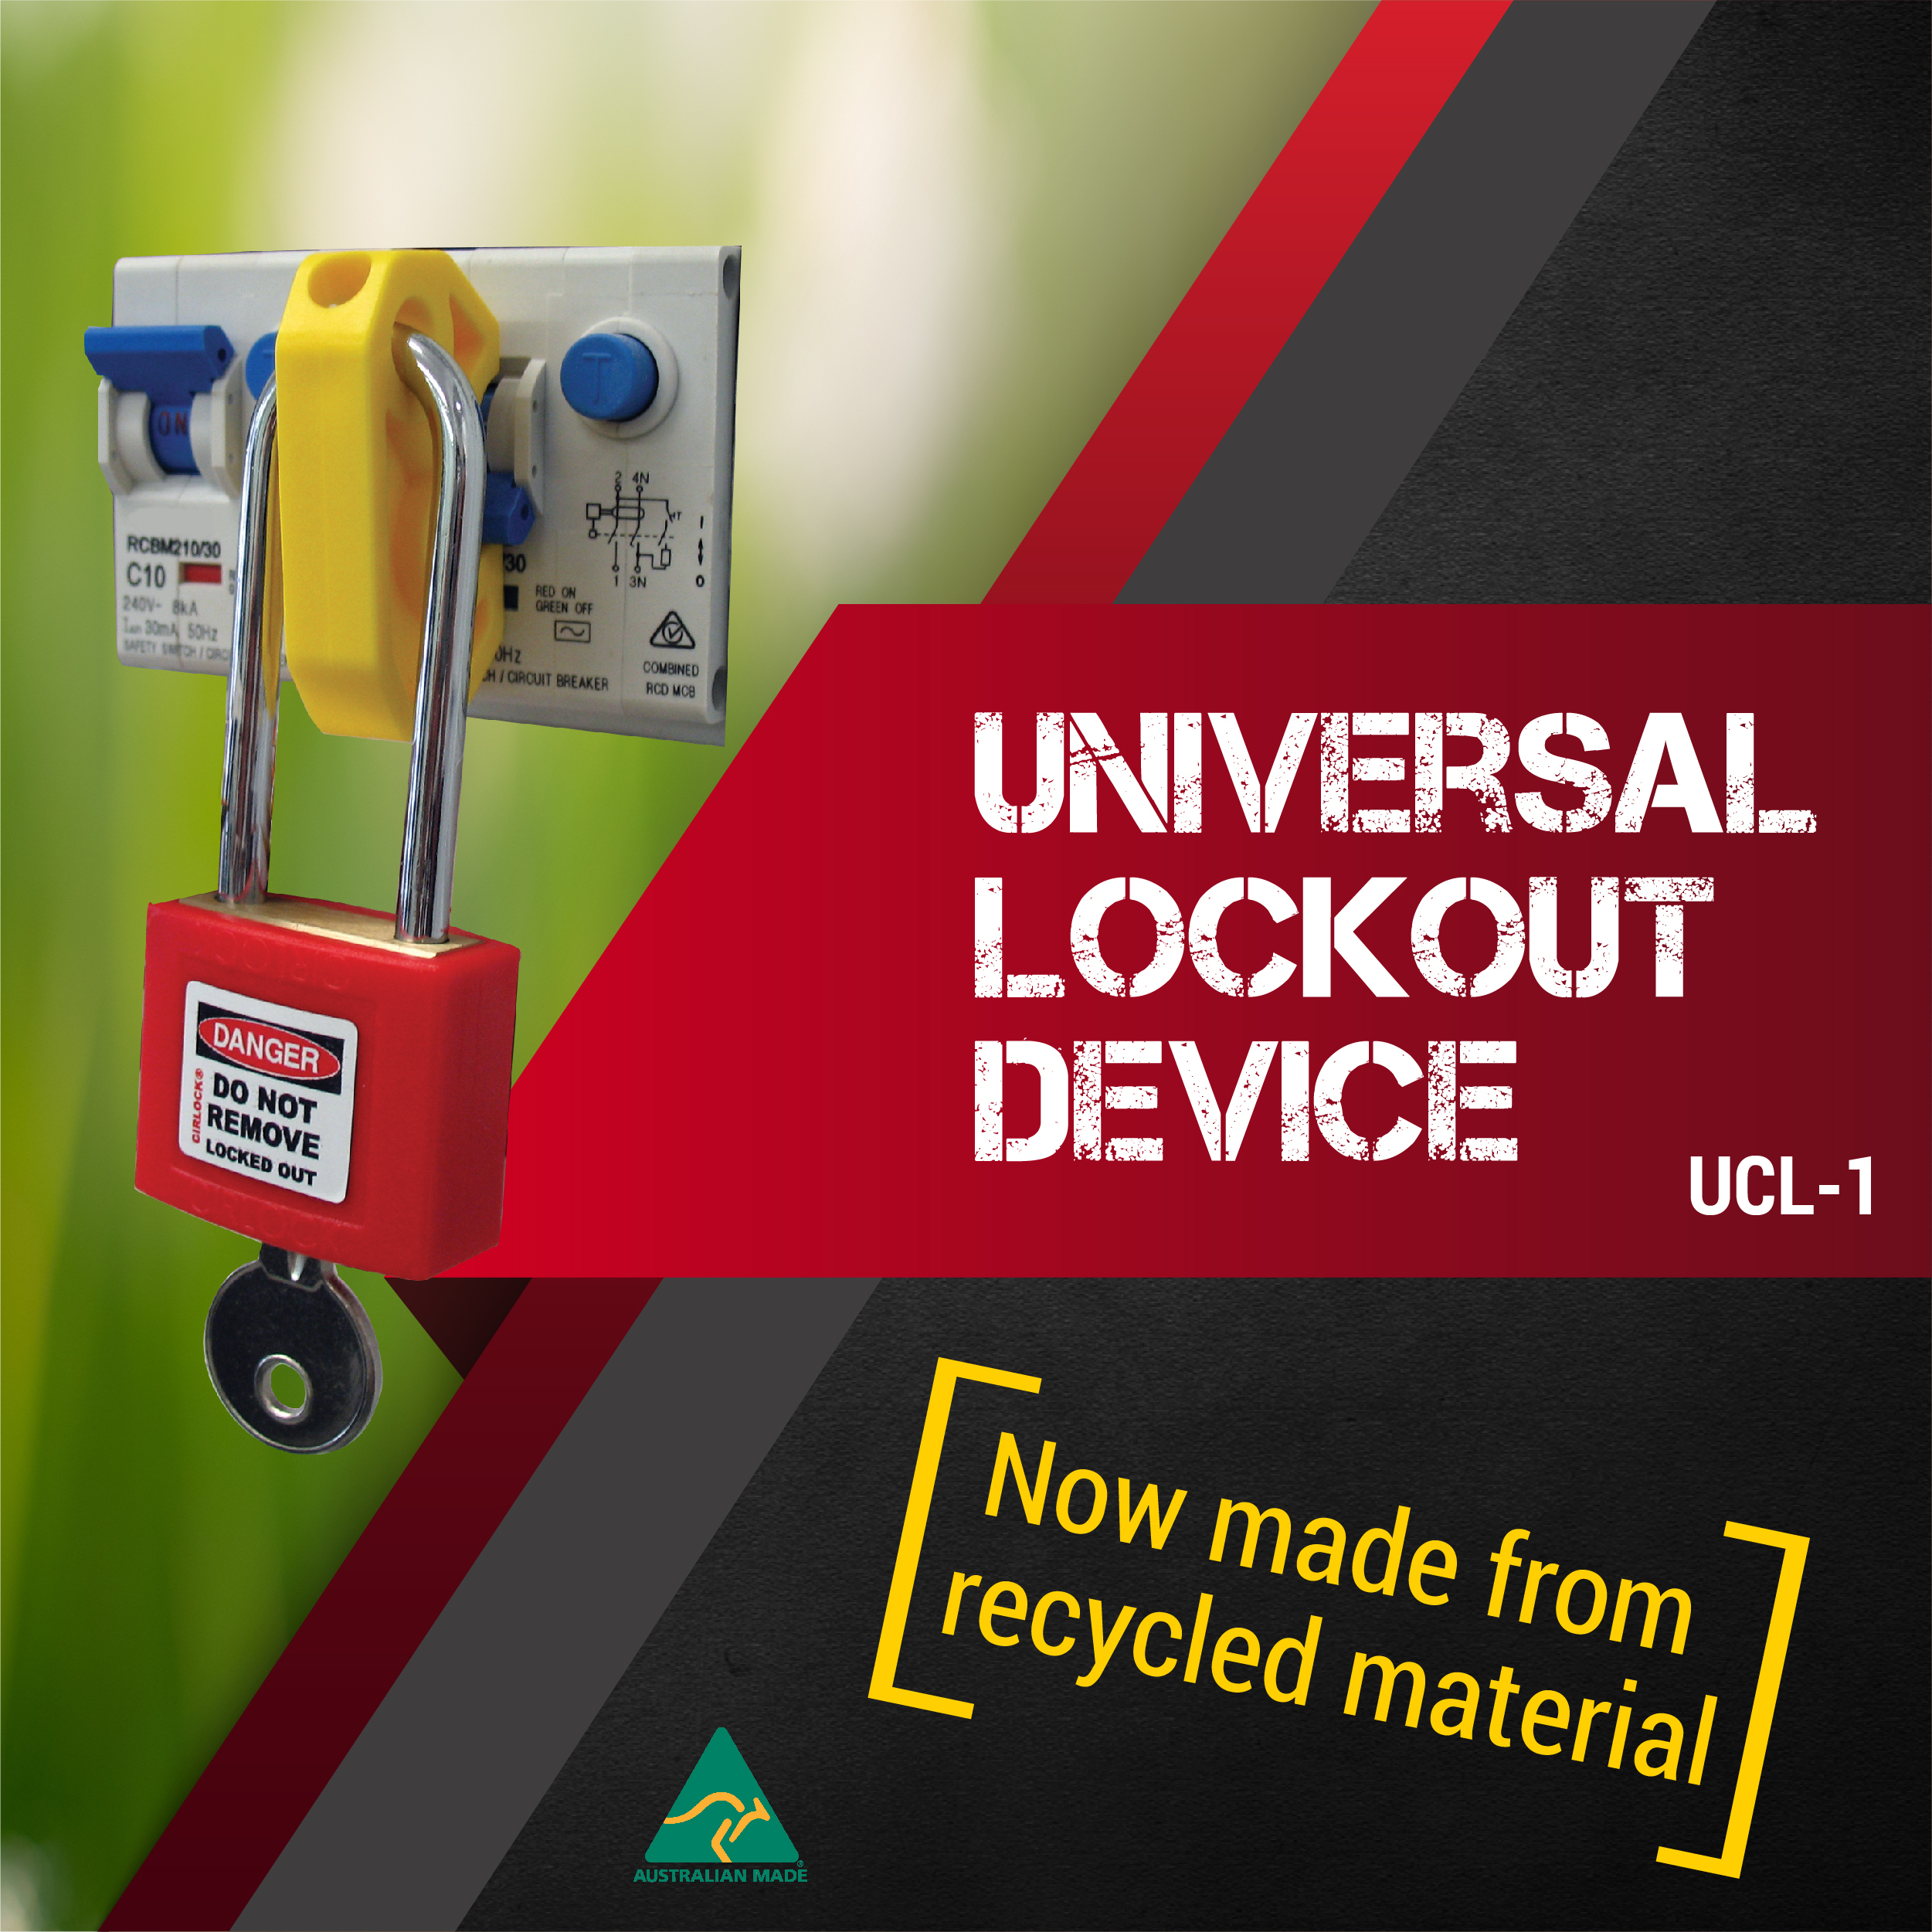 UCL-1 Universal Lockout Device for Miniature Circuit Breakers